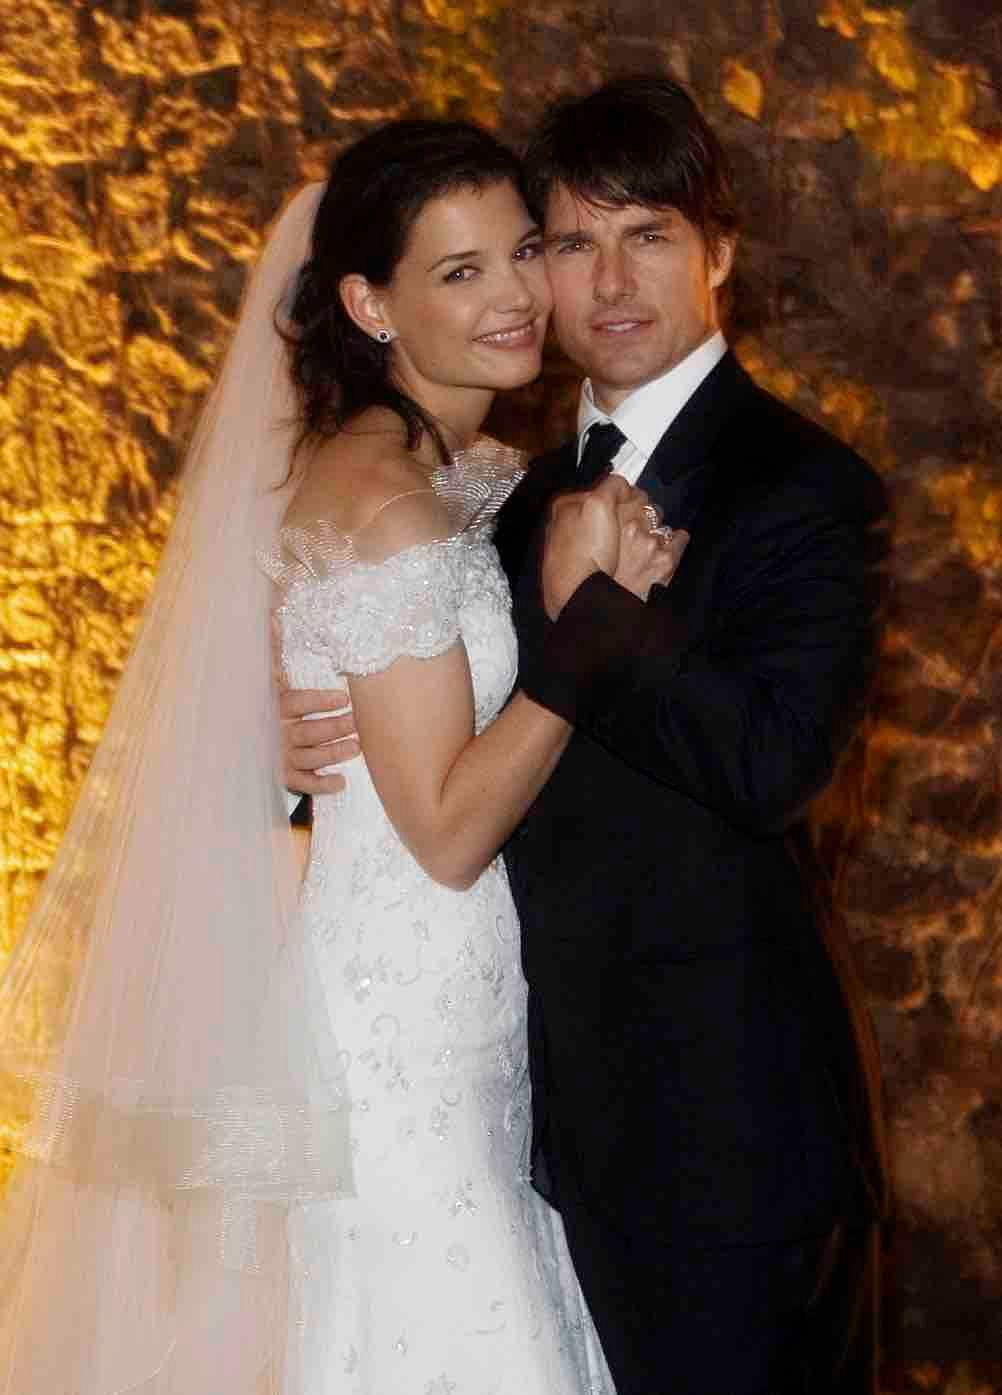 Tom Cruise and Katie Holmes on their wedding day (Photo: Reuters)